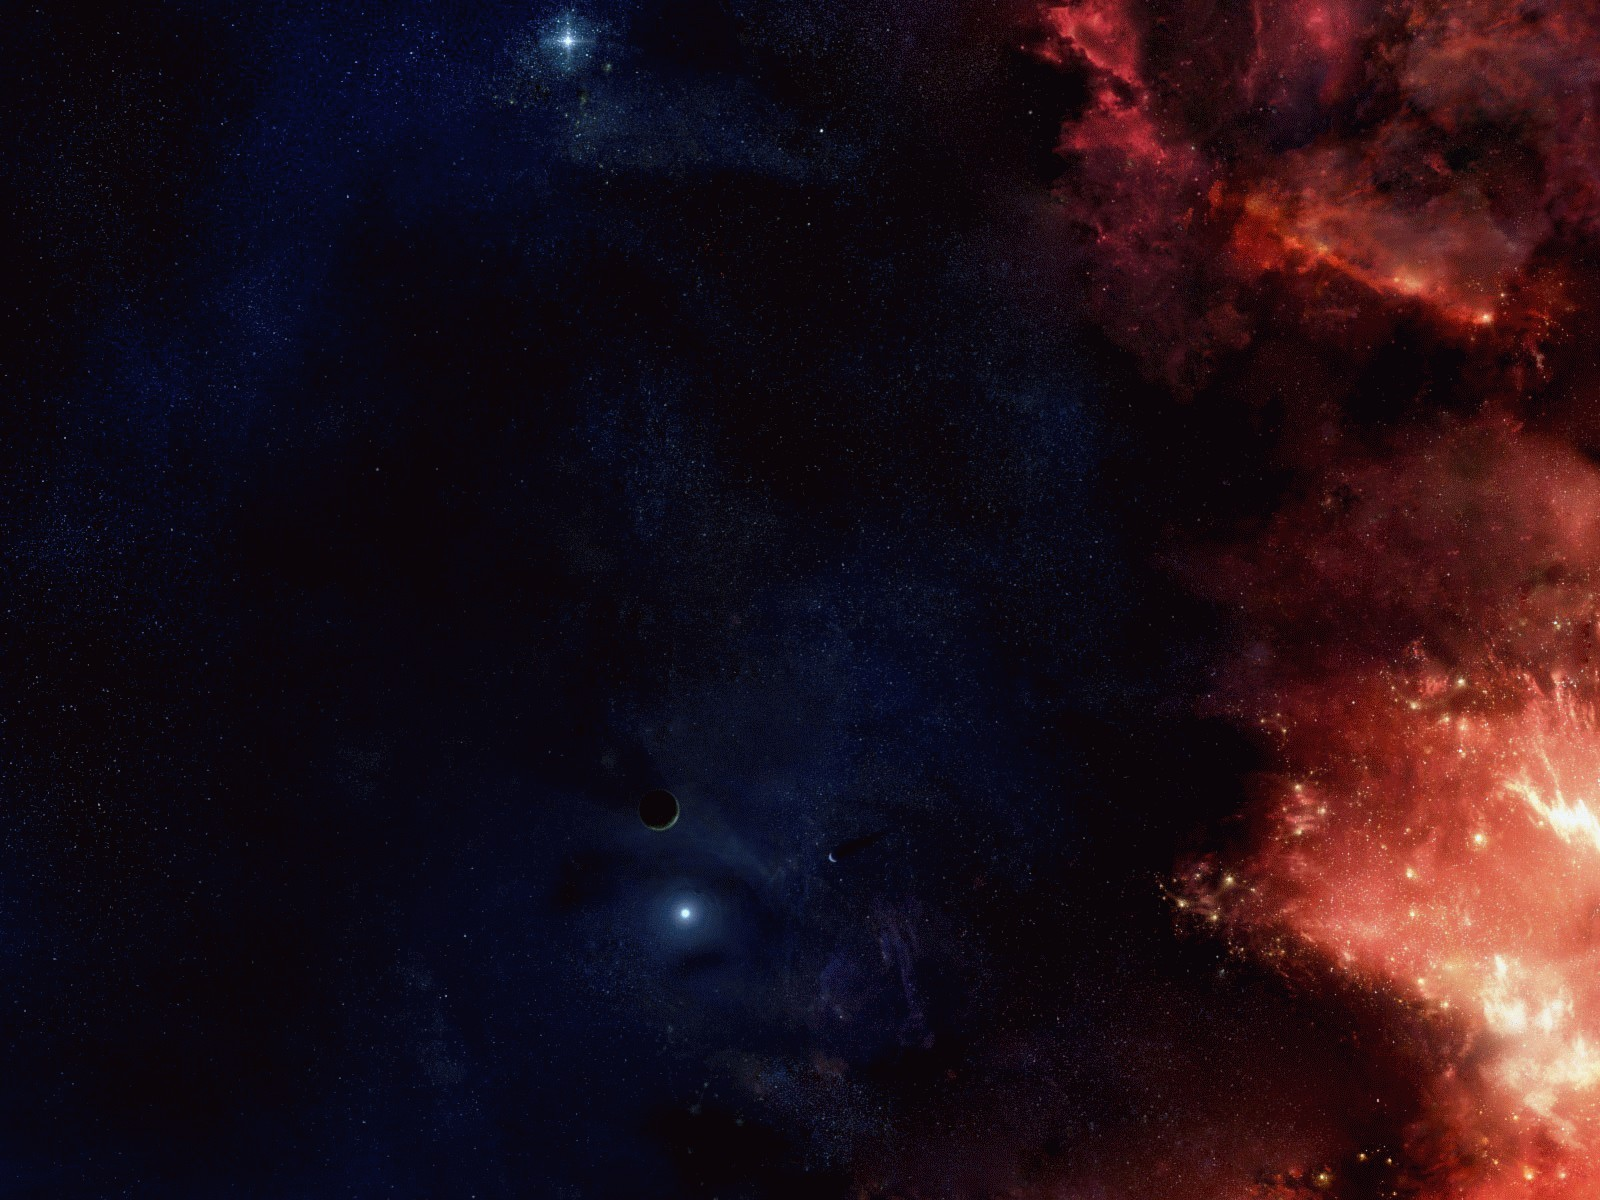 Wallpaper glowing clouds and dark space desktop 1600x1200